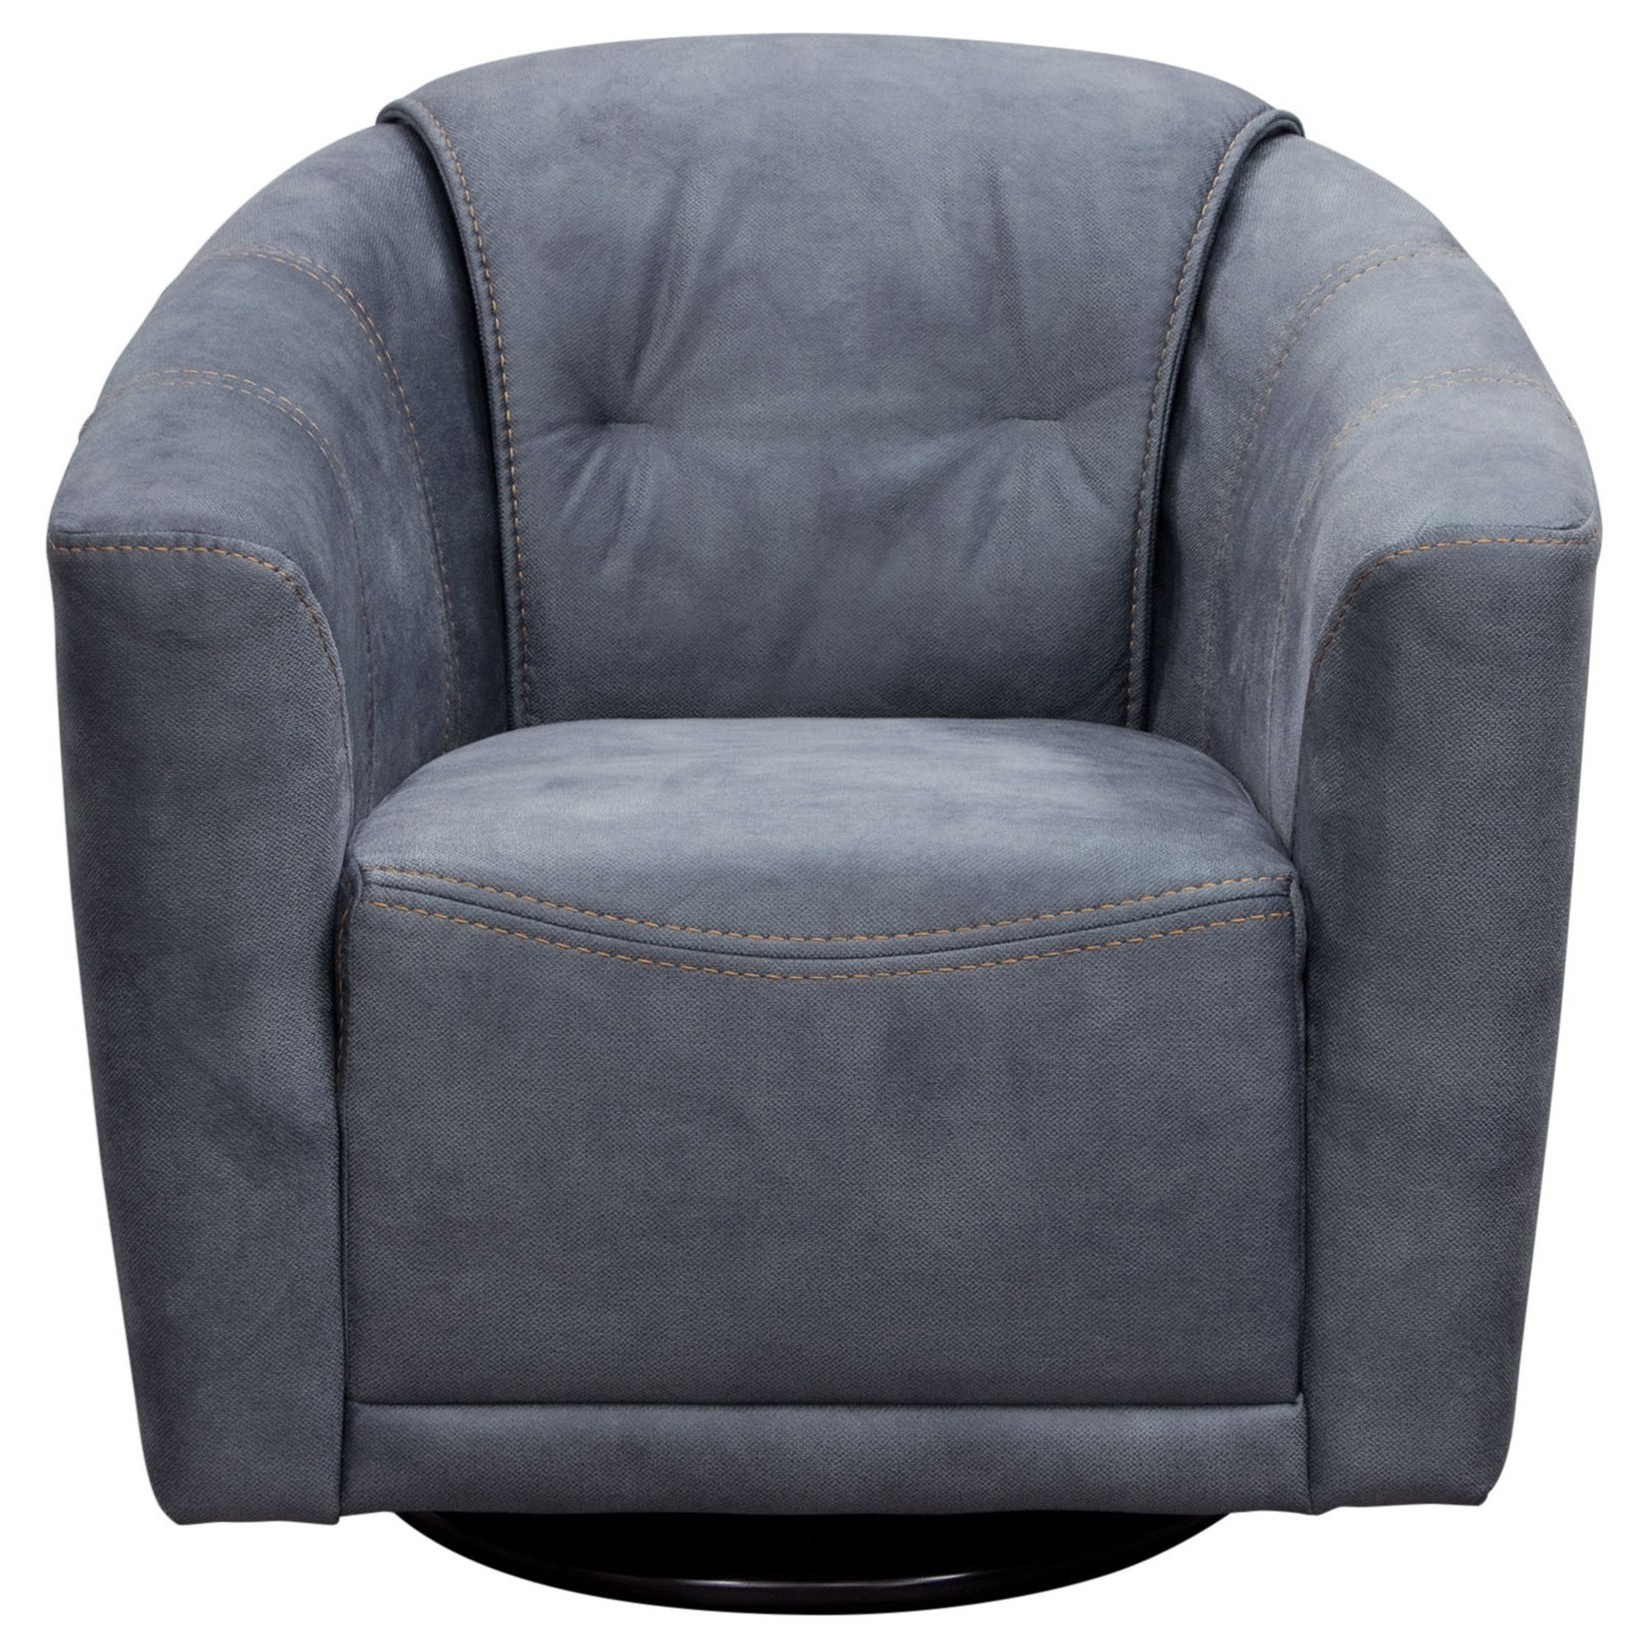 2019 Umber Grey Swivel Accent Chairs Intended For Diamond Sofa Accent Chairs Murphychgr Swivel Accent Chair In Light (View 3 of 20)